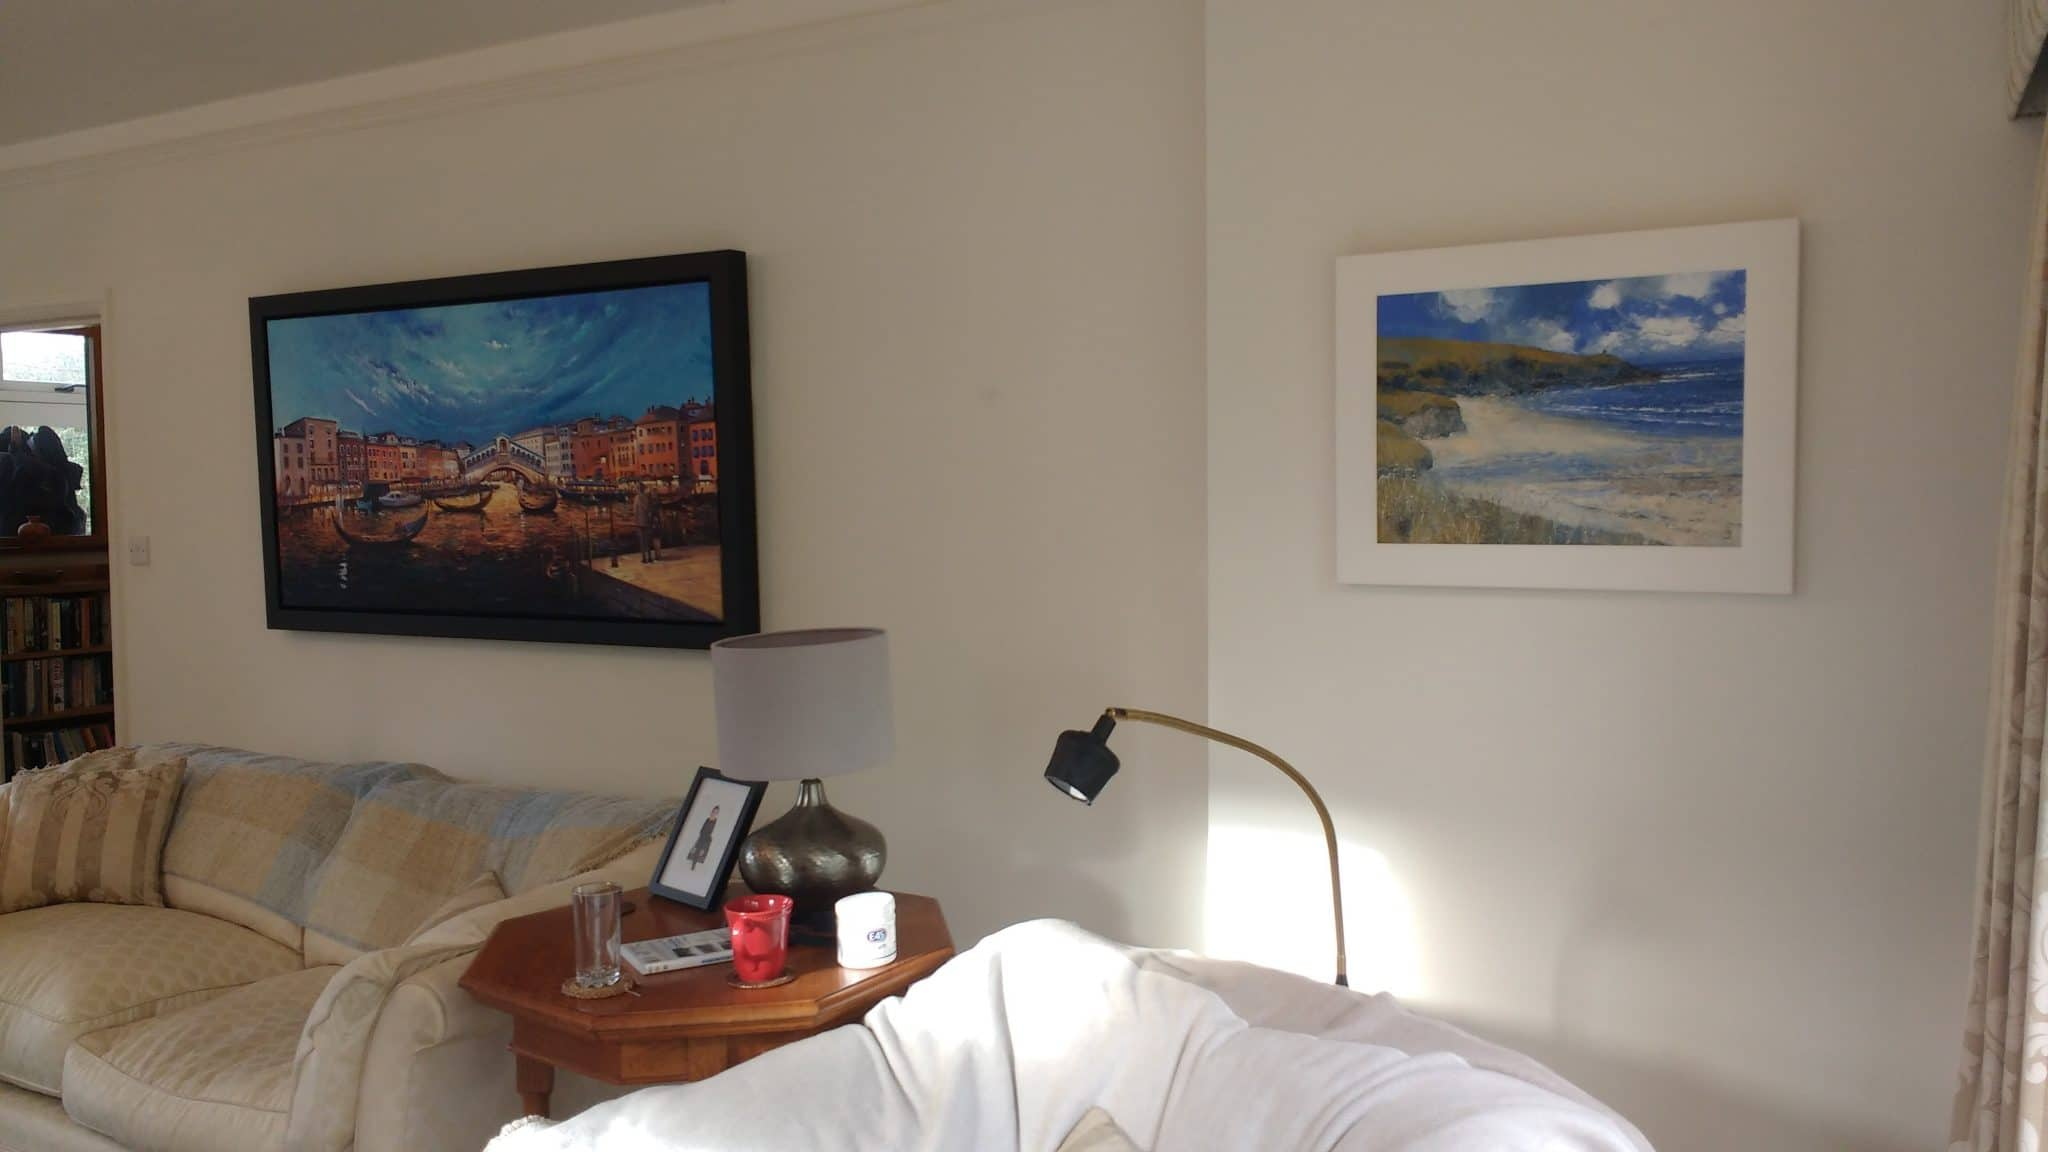 Two paintings in a living room in Leatherhead.